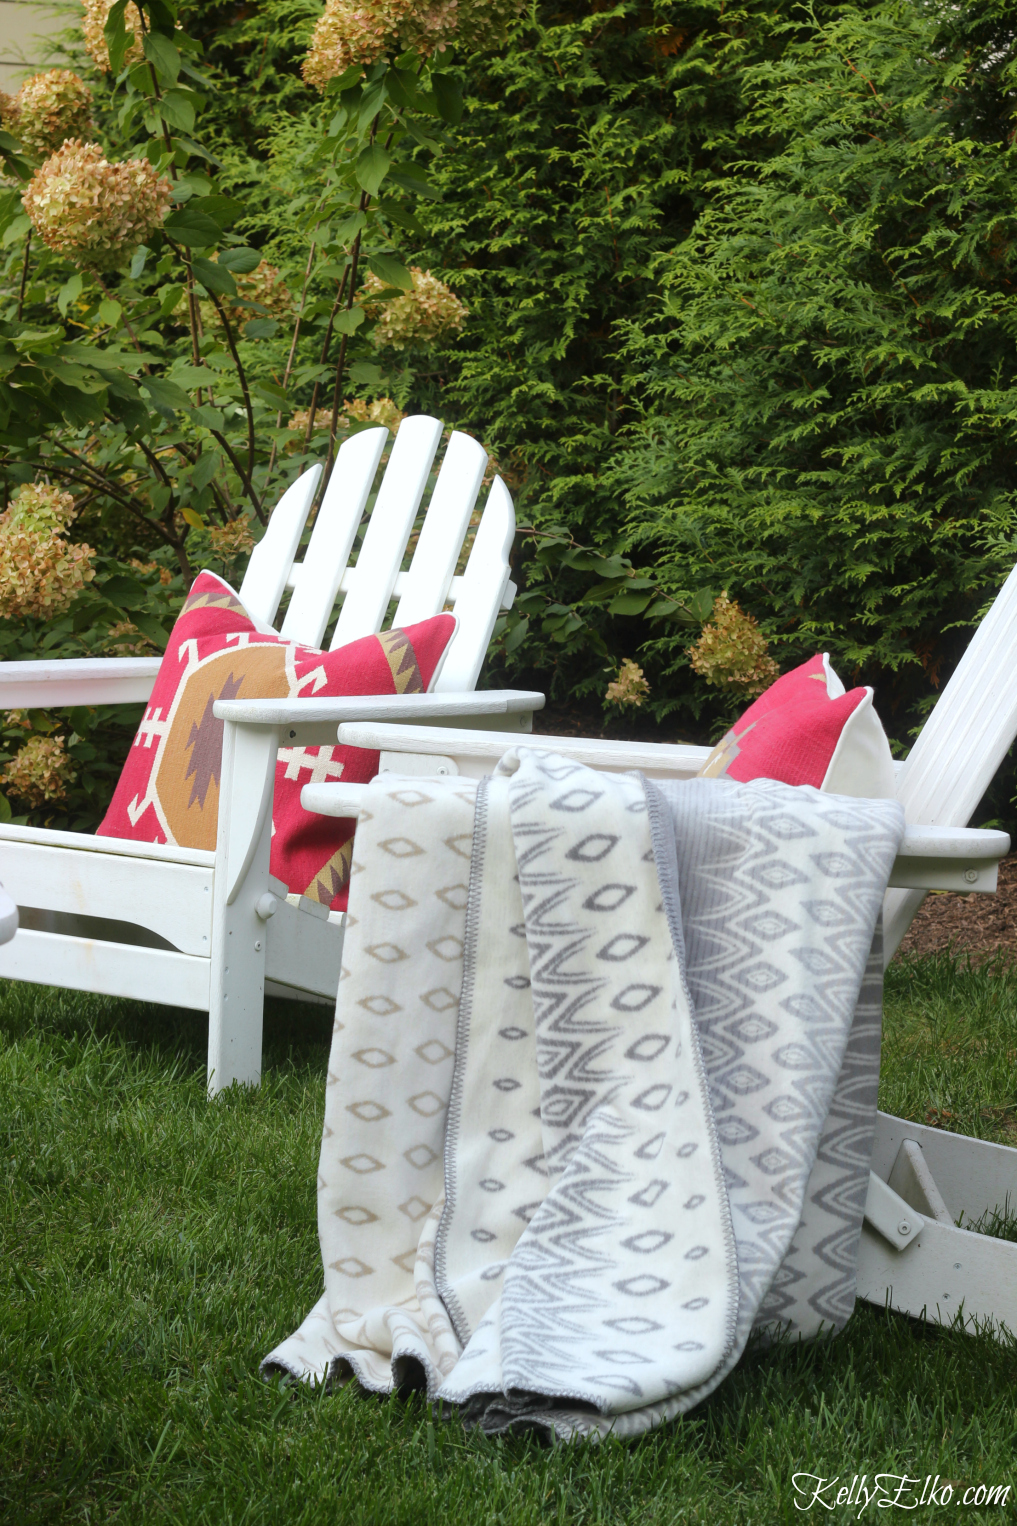 Cozy up outdoor seating with colorful pillows and cozy throws kellyelko.com